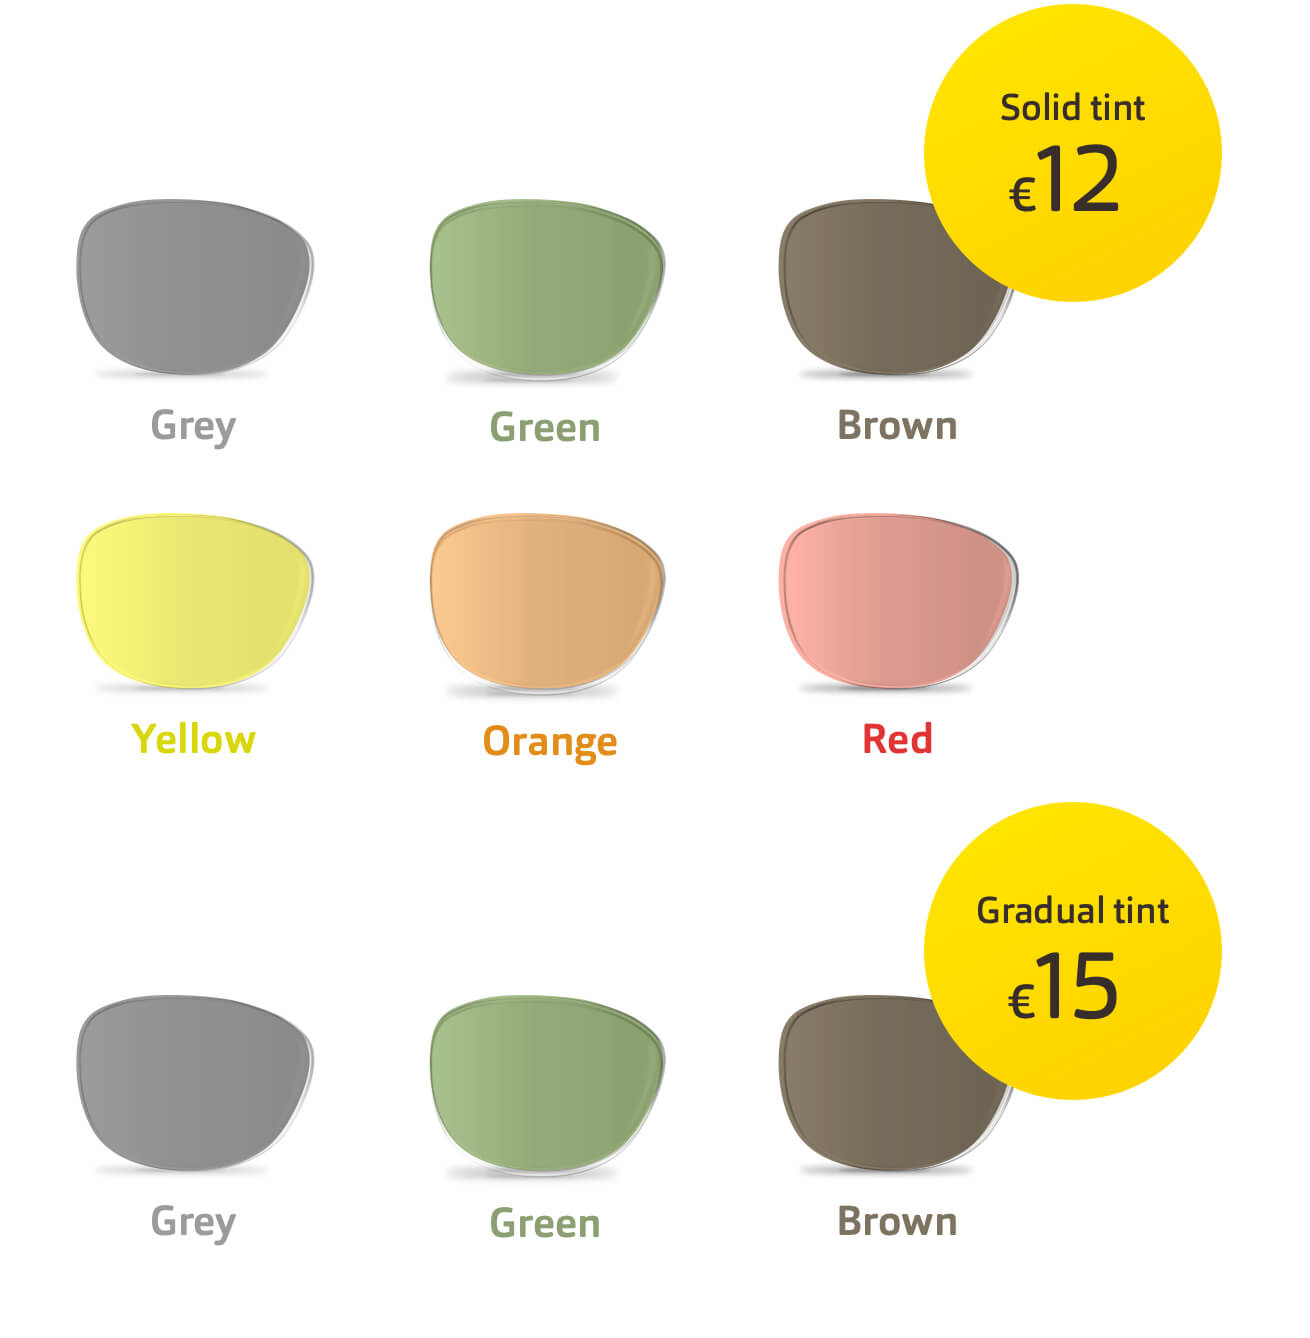 A variety of coloured lenses for sunglasses in solid and gradual tints.